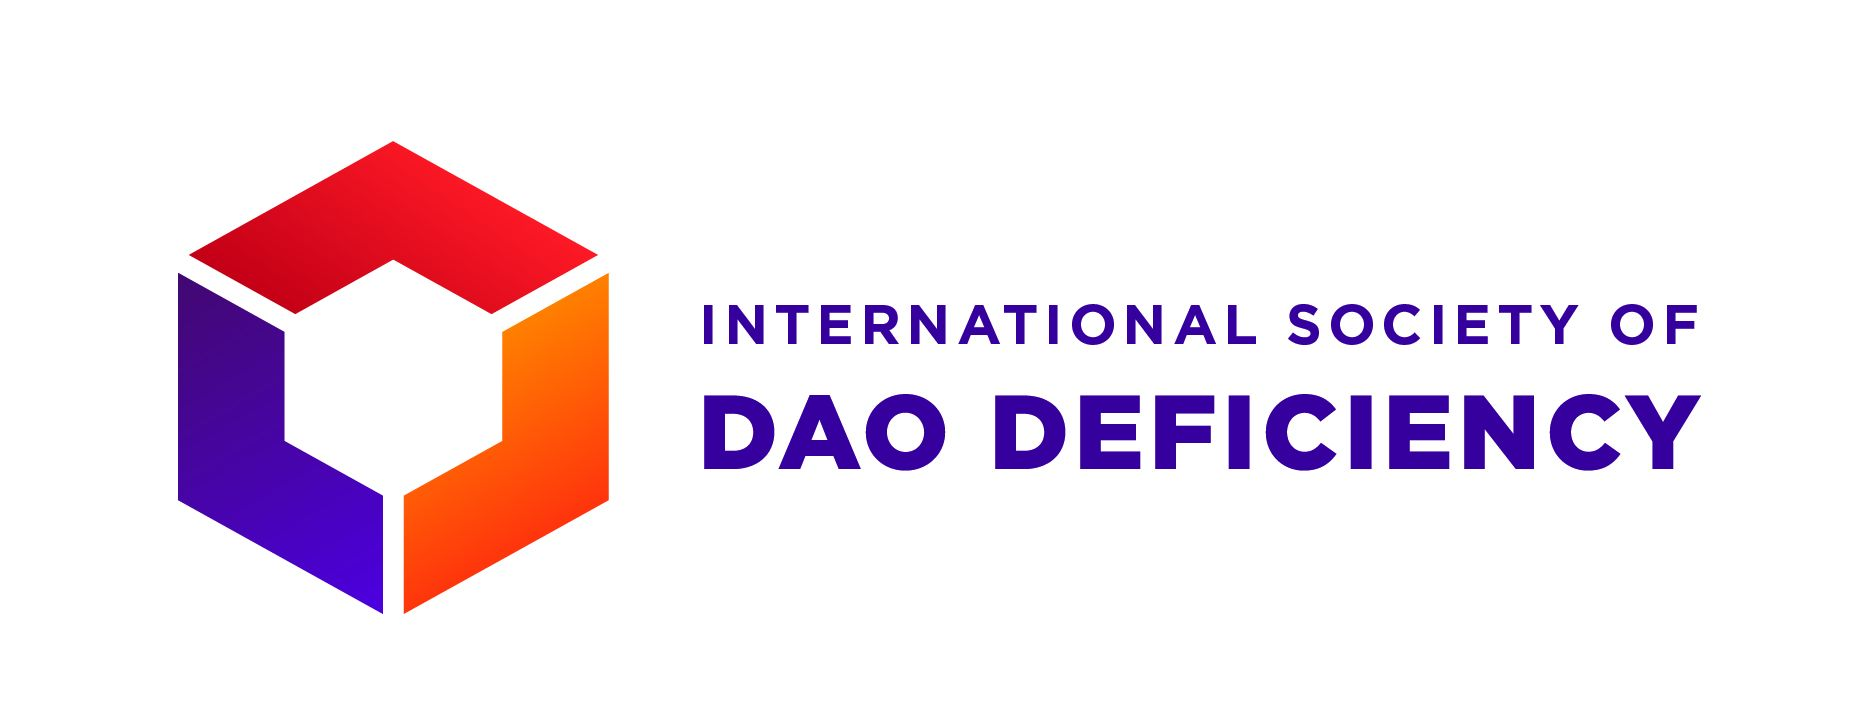 International Society of DAO Deficiency